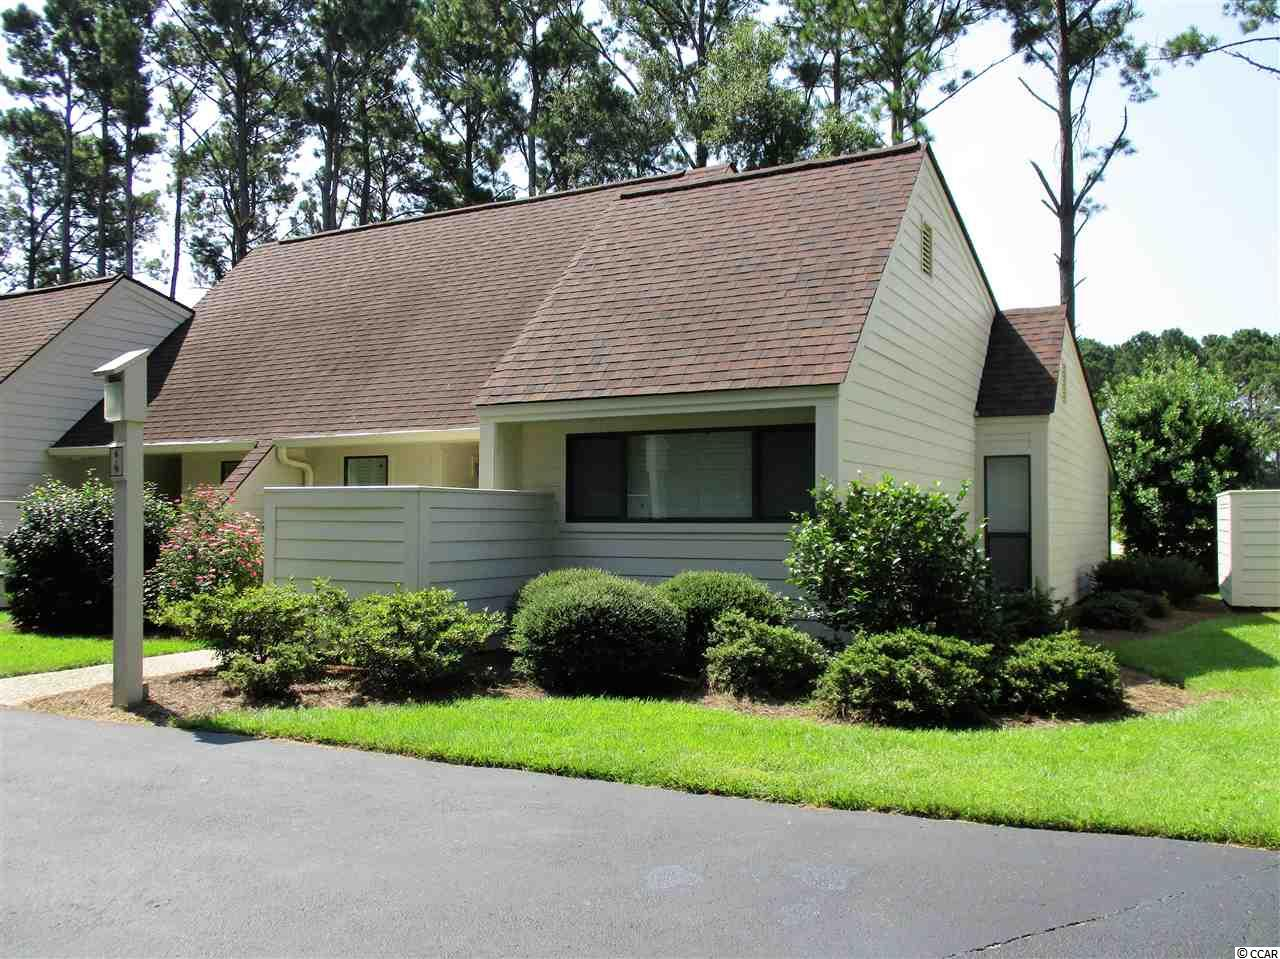 TALL PINES condo for sale in Pawleys Island, SC